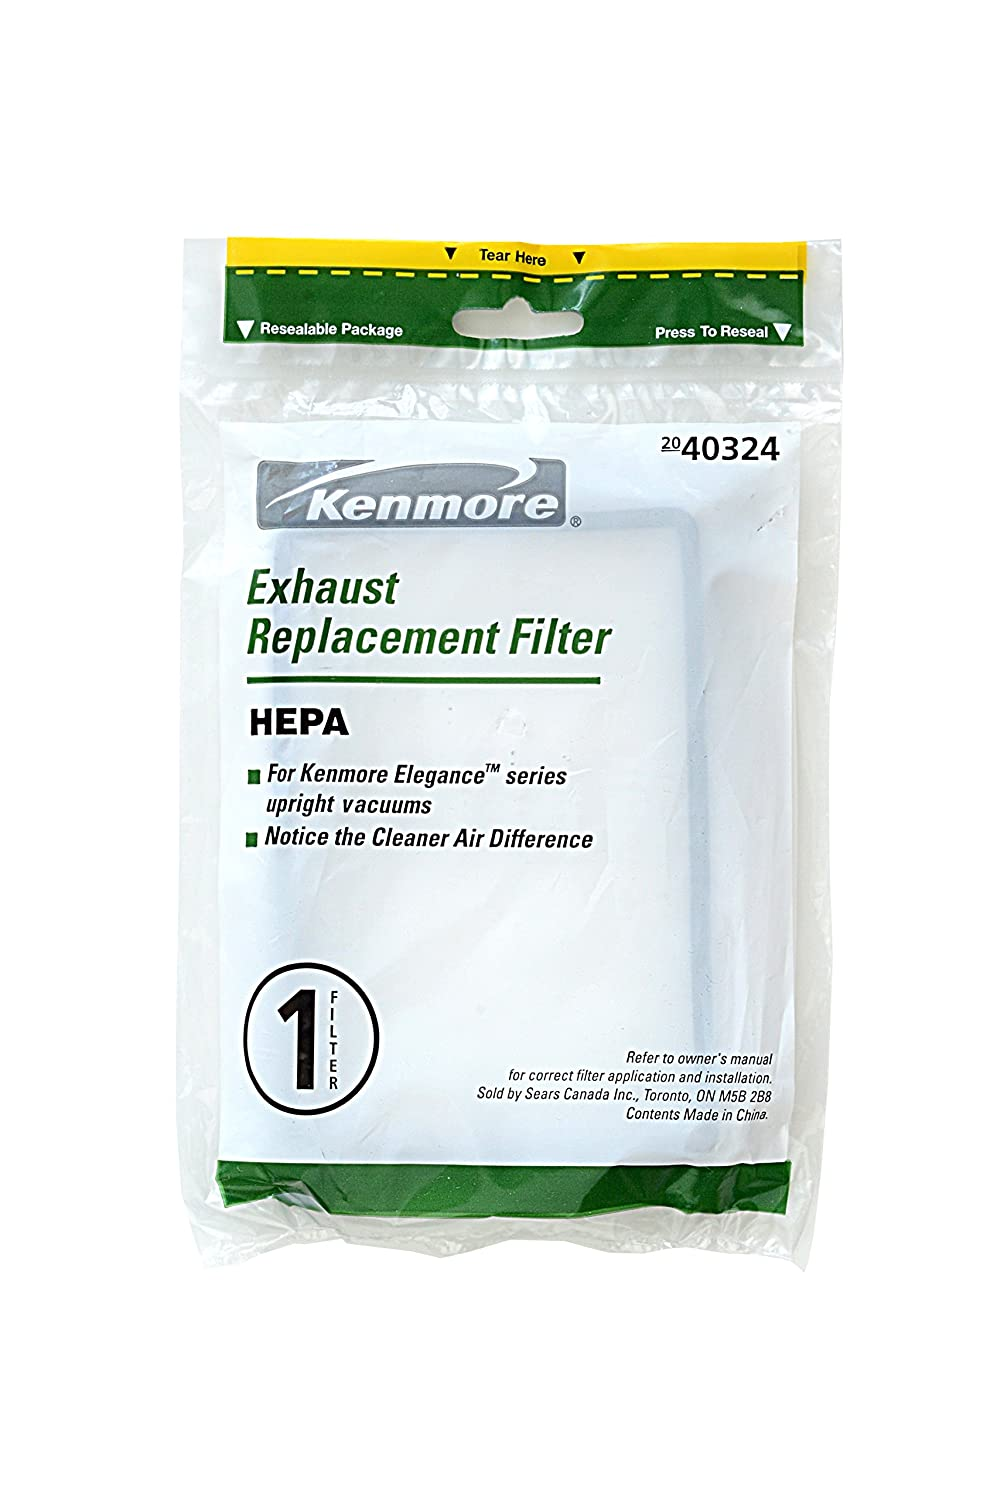 Kenmore 40324 HEPA Exhaust Vacuum Filter. Genuine Kenmore Filter for Canister and Upright Vacuum Cleaners. Package of 1 HEPA Filter